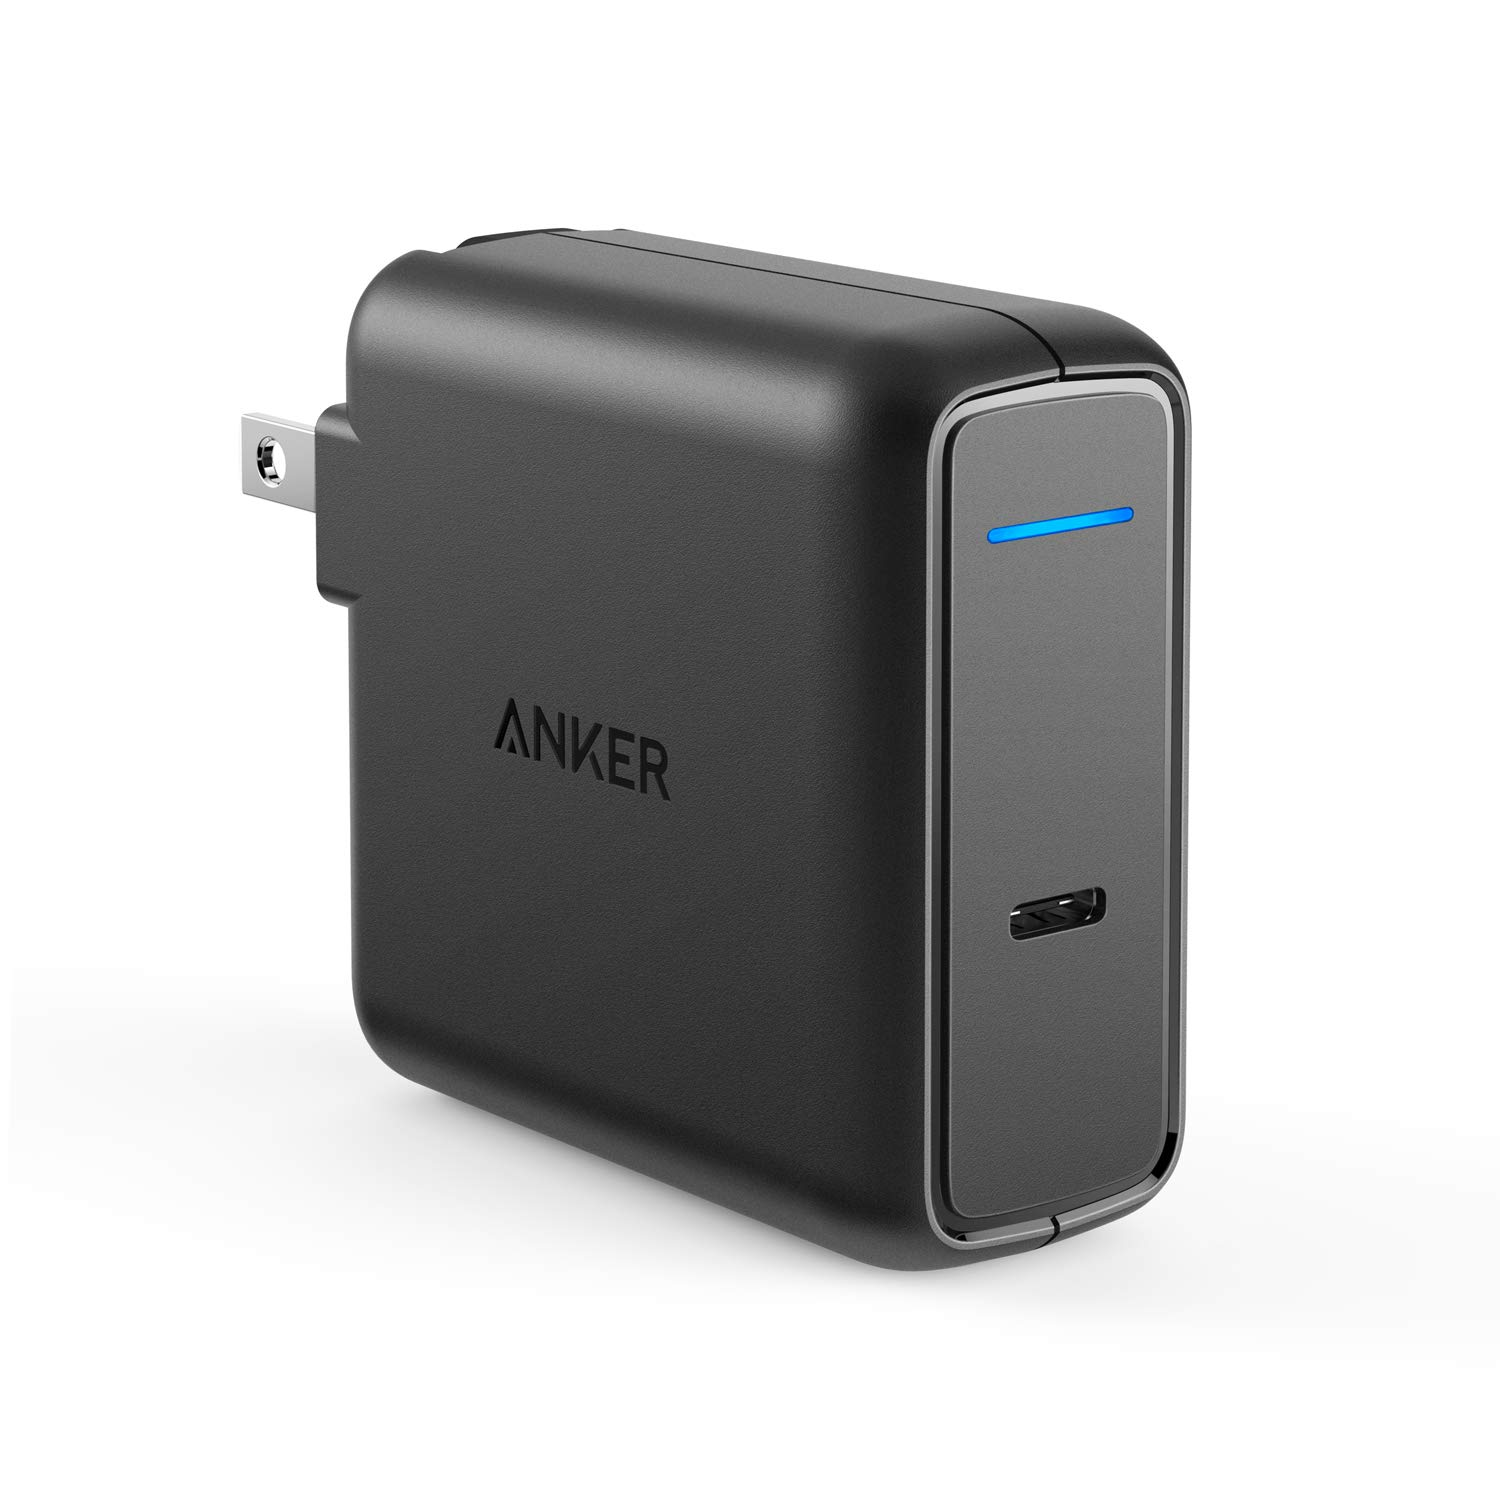 Anker USB Type-C with Power Delivery 60W USB Wall Charger, PowerPort Speed 1 for MacBook Pro/Air 2018, iPad Pro 2018, HTC 10, Nexus 5X/6P, LG G6, Pixel C/3/2/XL, MateBook, HP Spectre, Moto Z and More